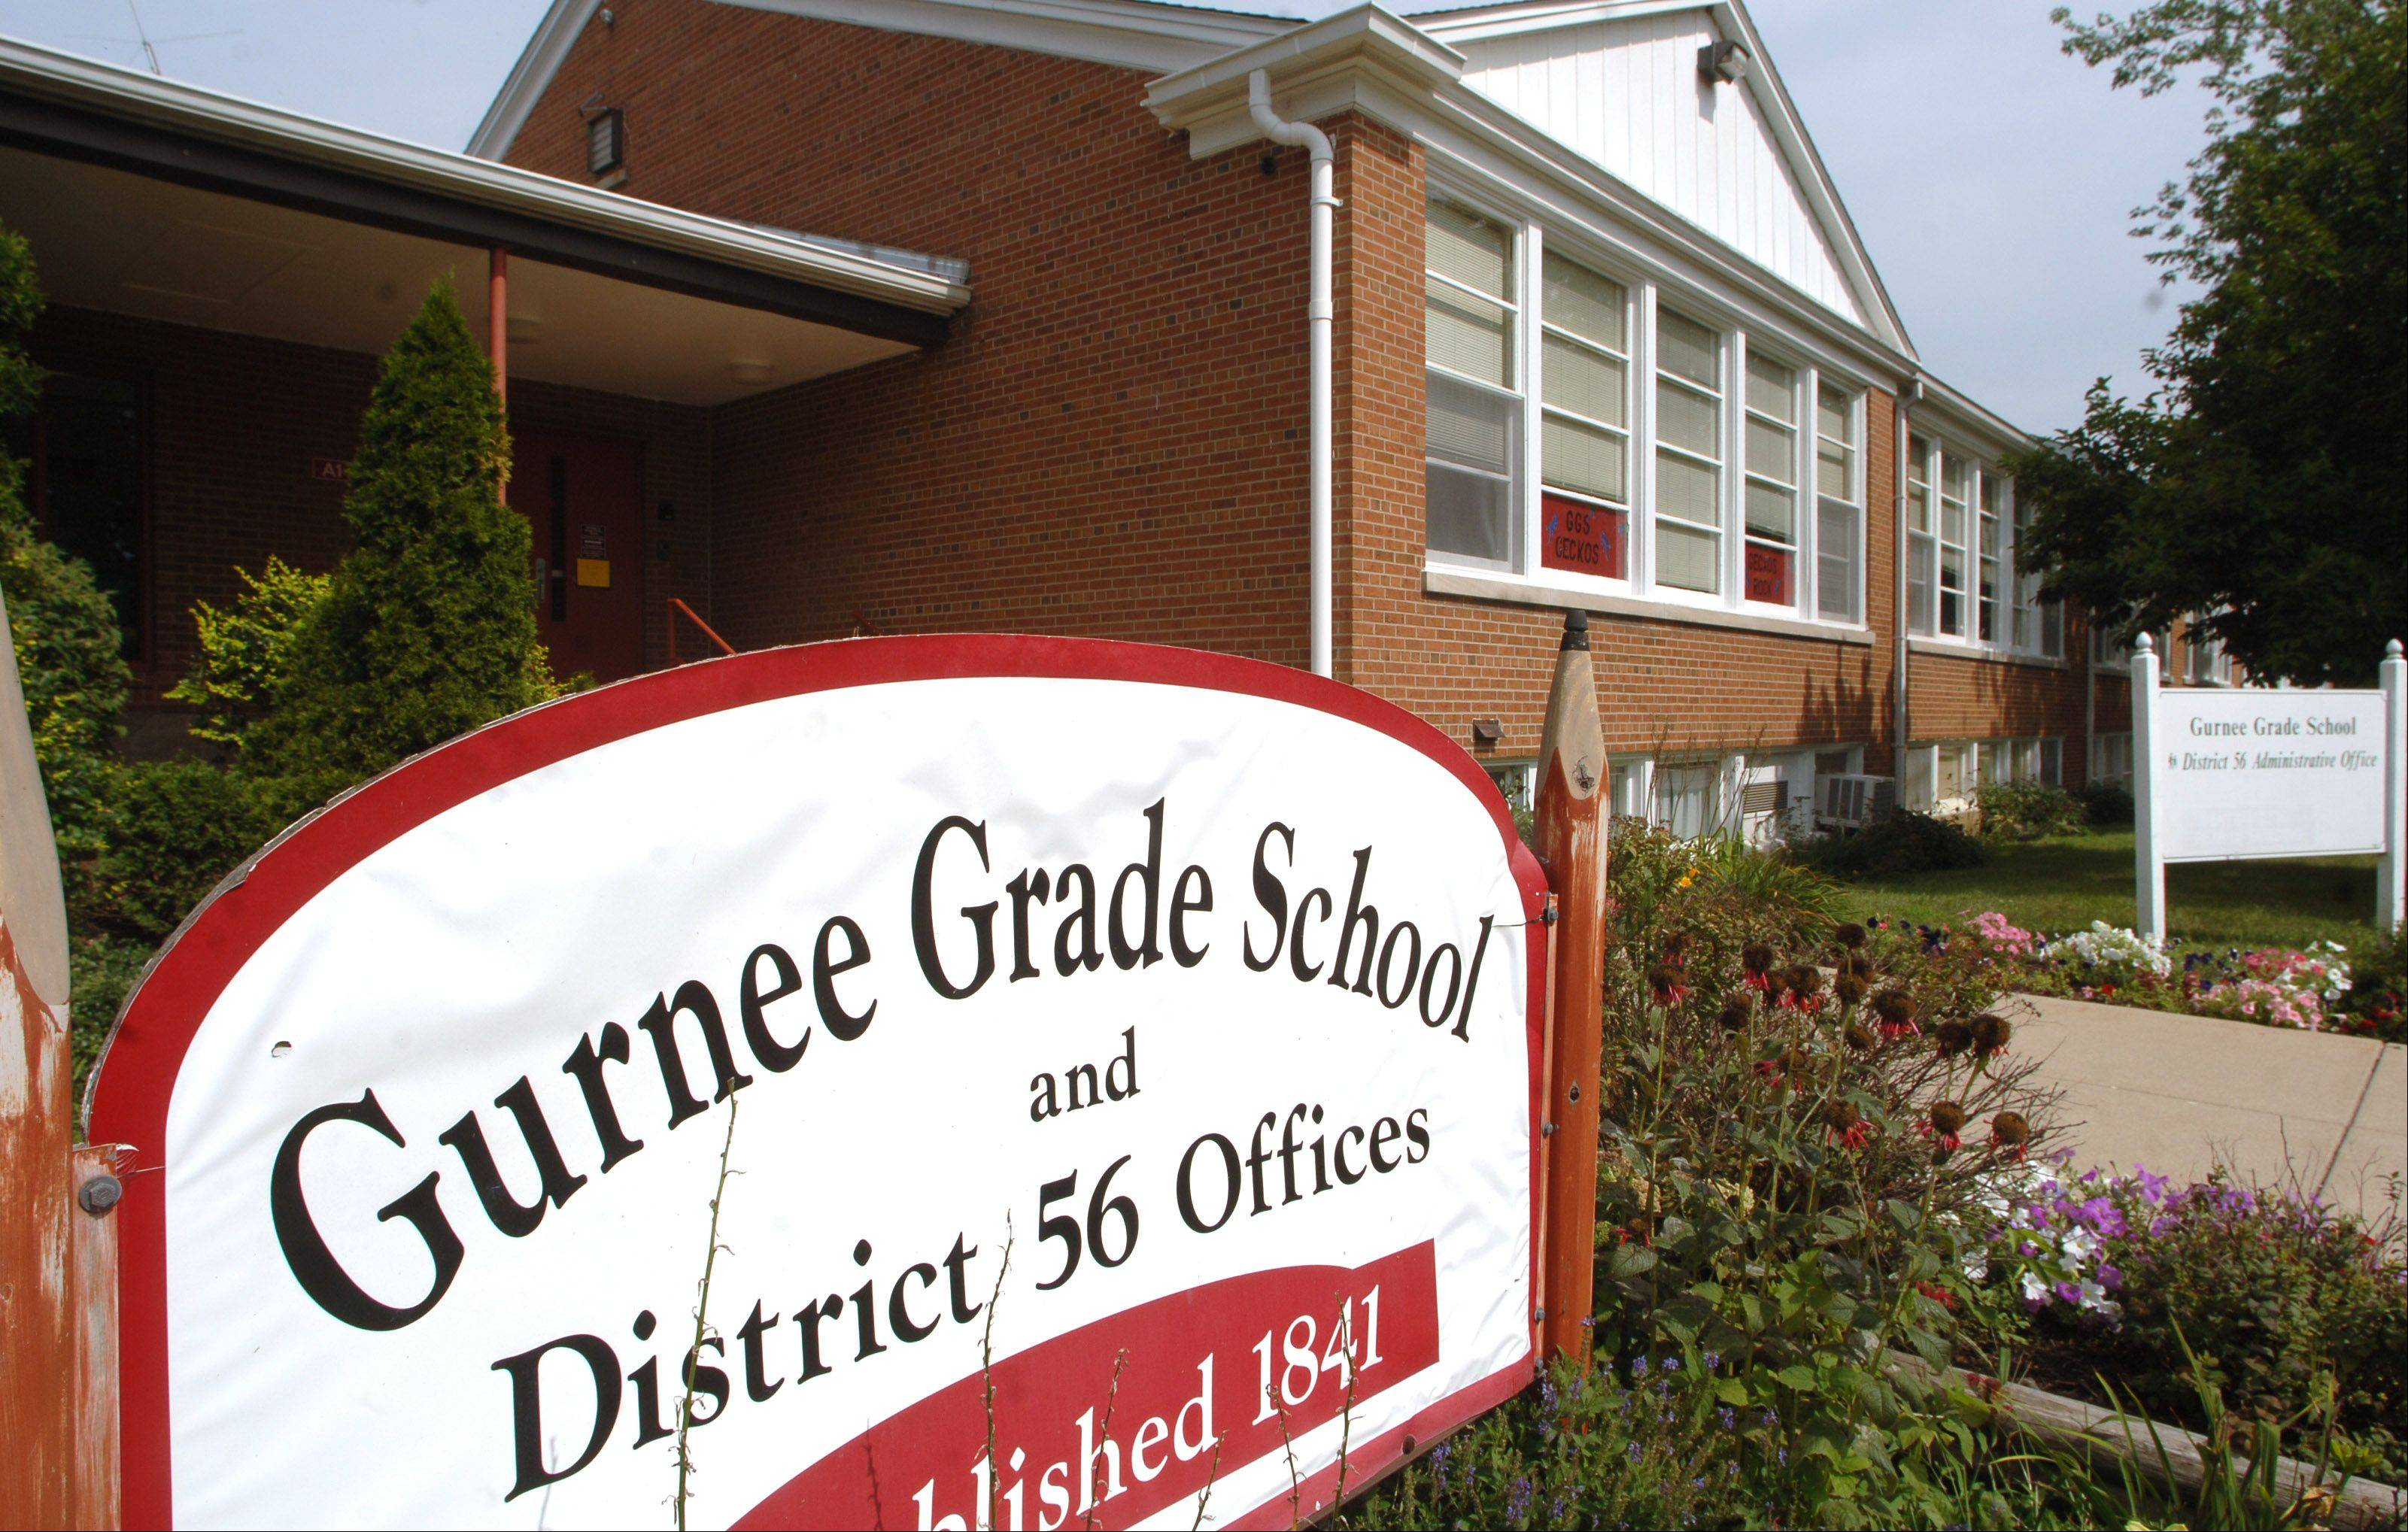 Demolition plan for flood-prone Gurnee Grade School gets a financial boost